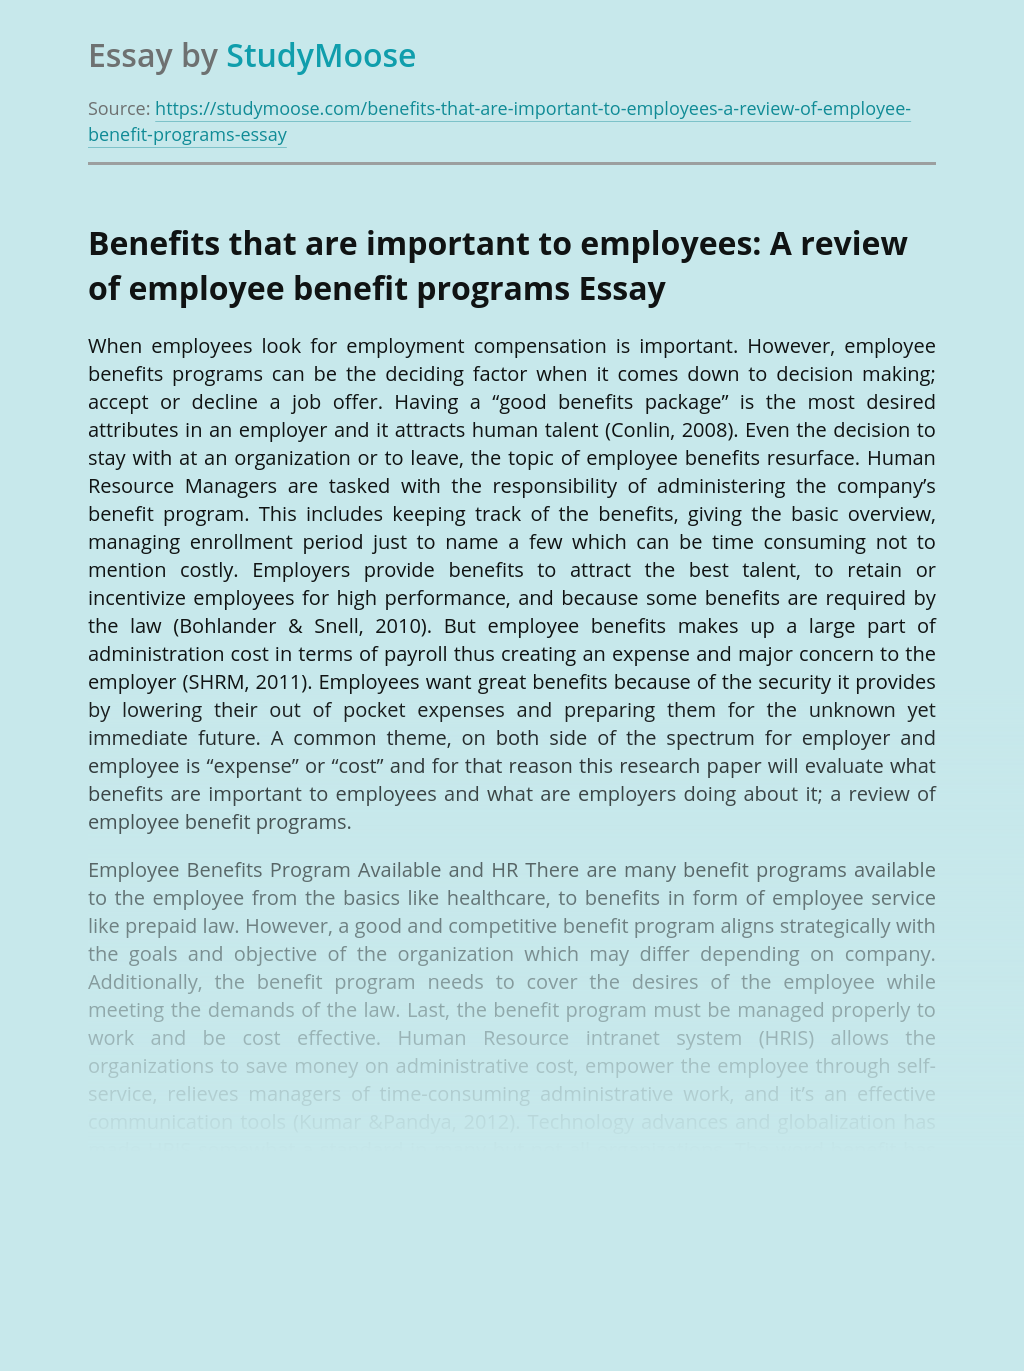 Review of Company's Employee Benefit Programs